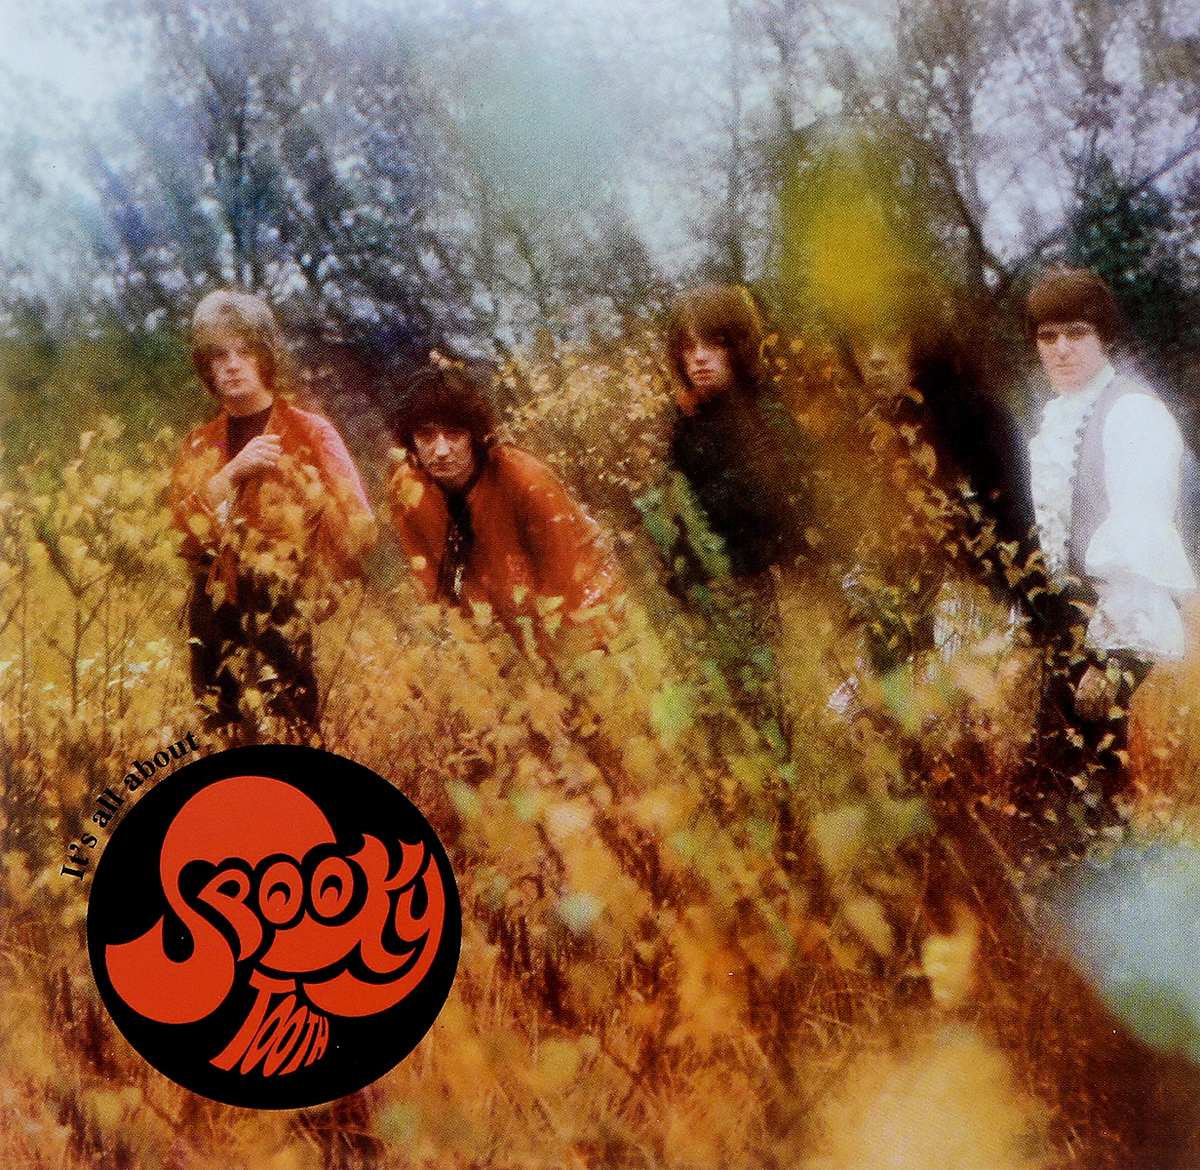 Spooky Tooth Spooky Tooth. It's All About spooky snap